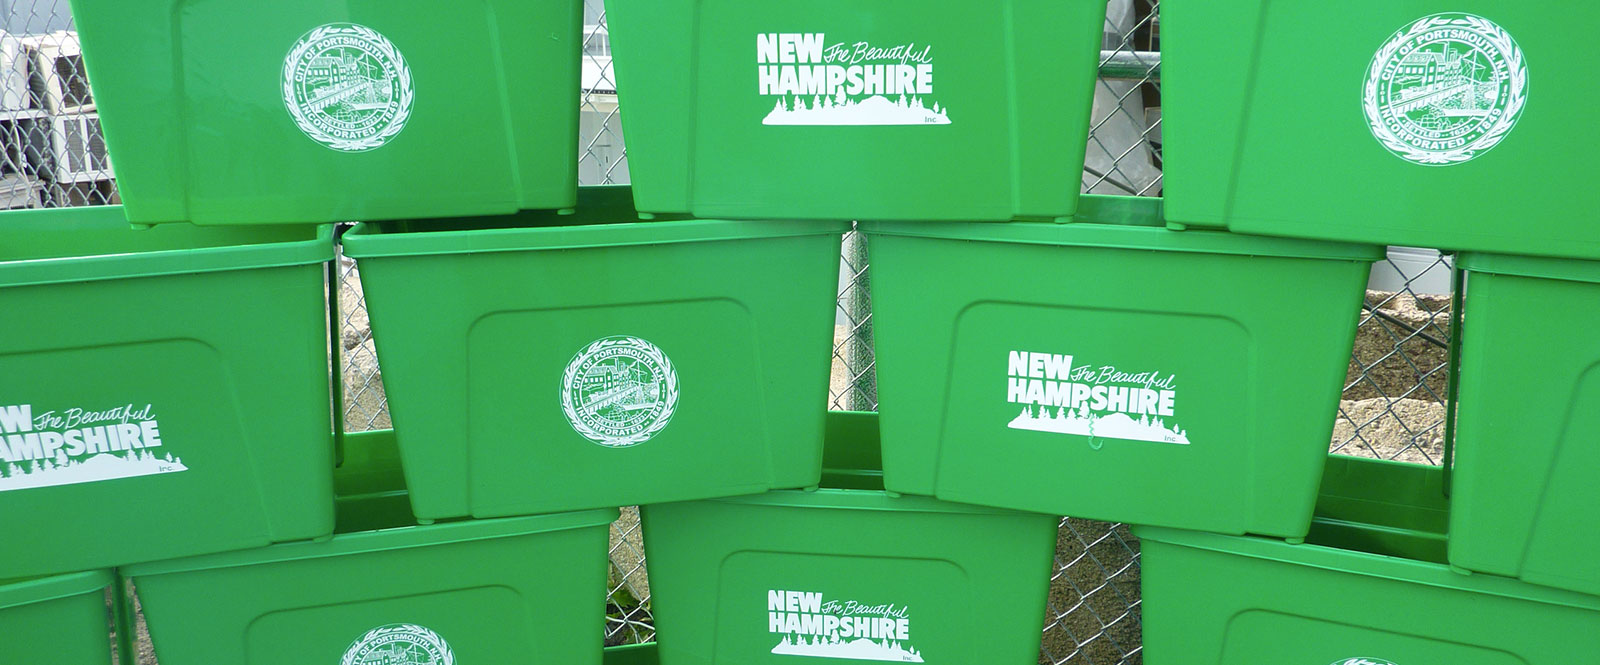 nhtb_recycling_containersb